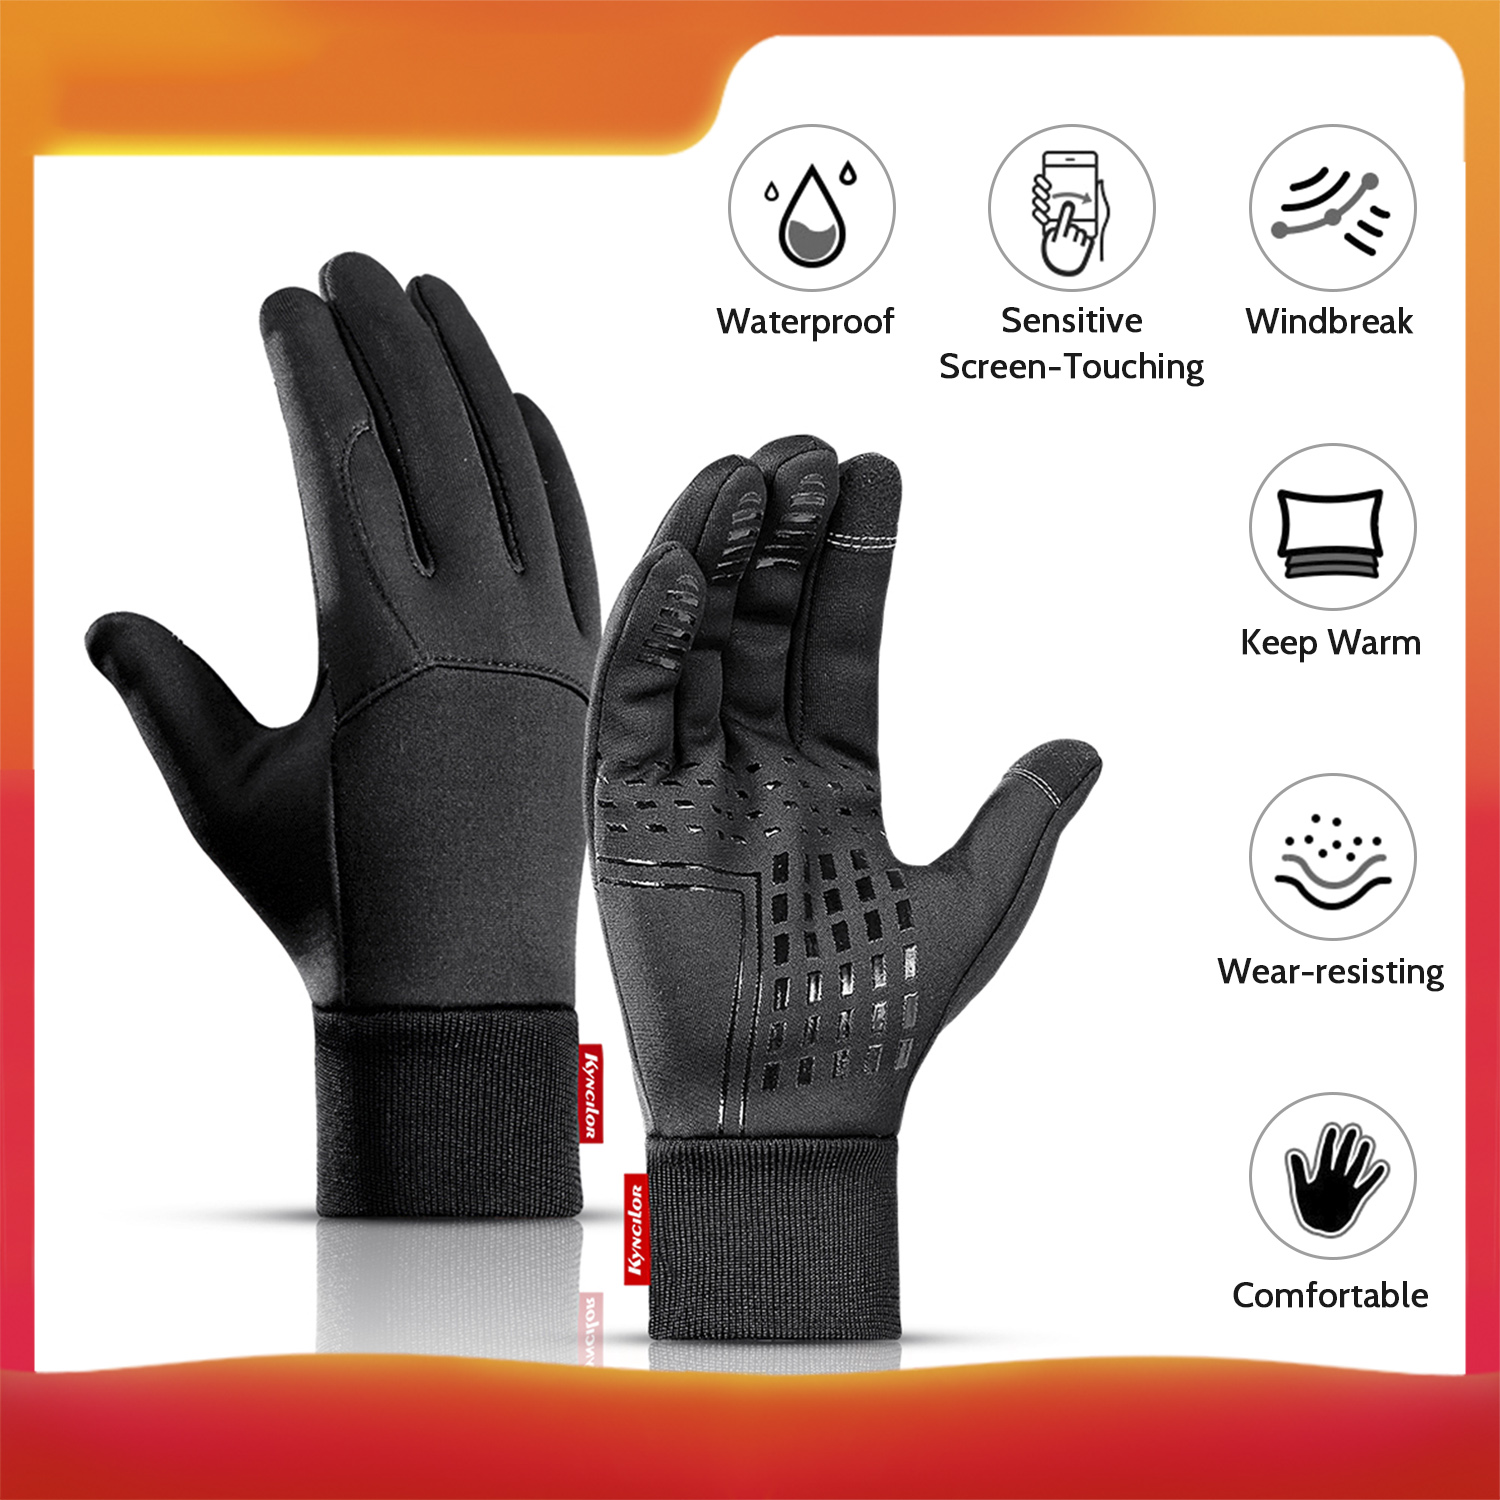 Kyncilor Outdoor Winter Sports Gloves Screen-Touching  Gloves  Warm-Keeping Gloves Cold Weather Windproof Cycling Skiing Gloves